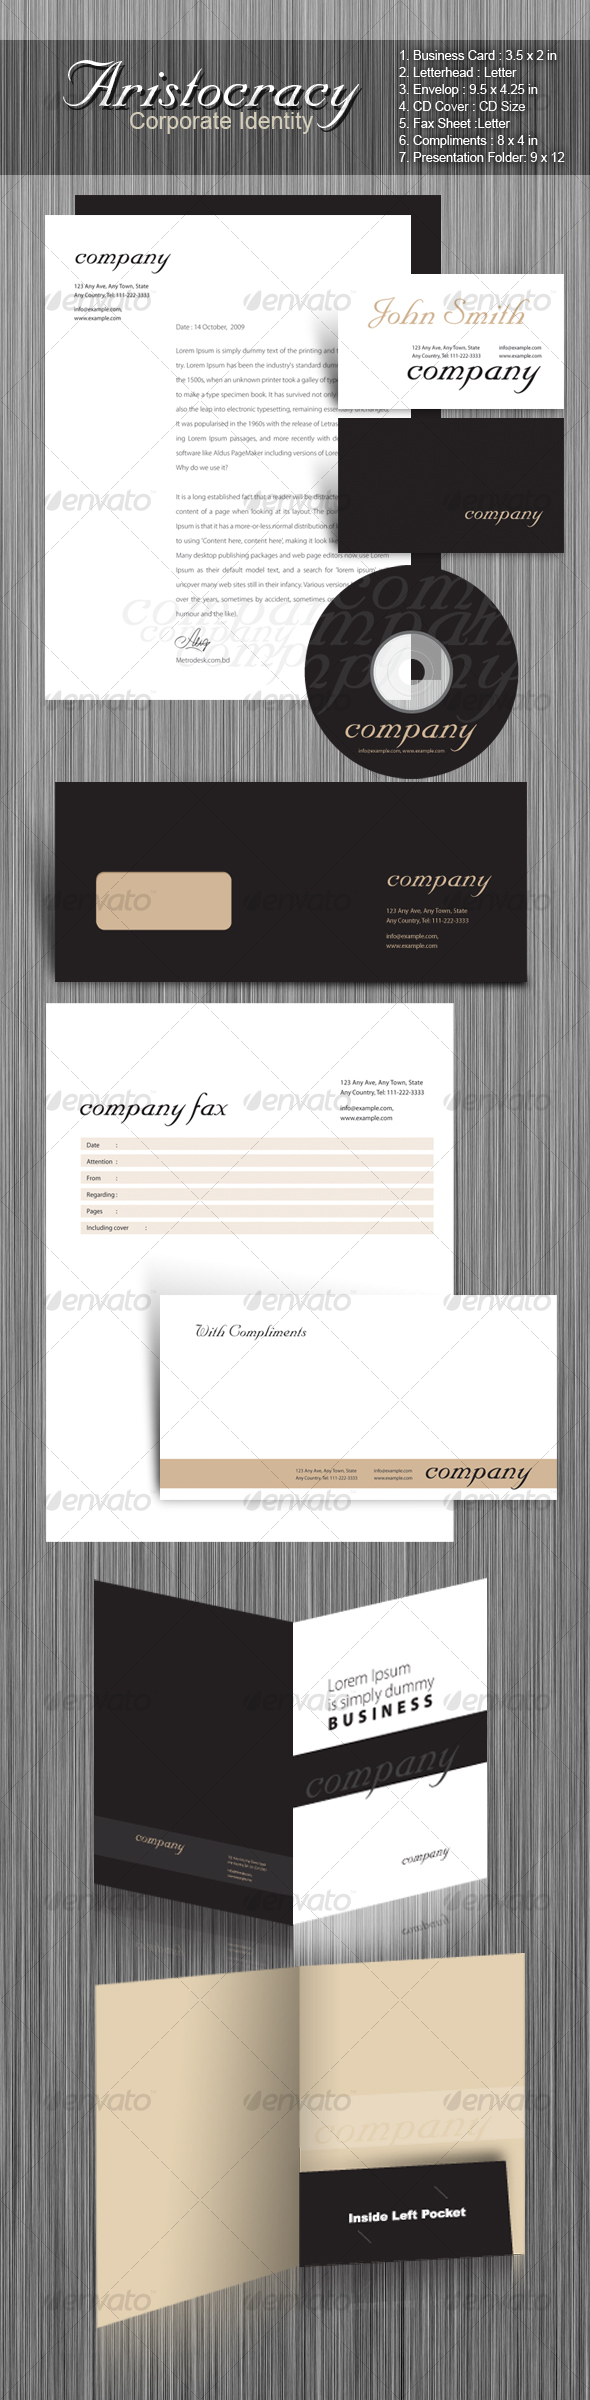 GraphicRiver Aristocracy Corporate Identity 66061